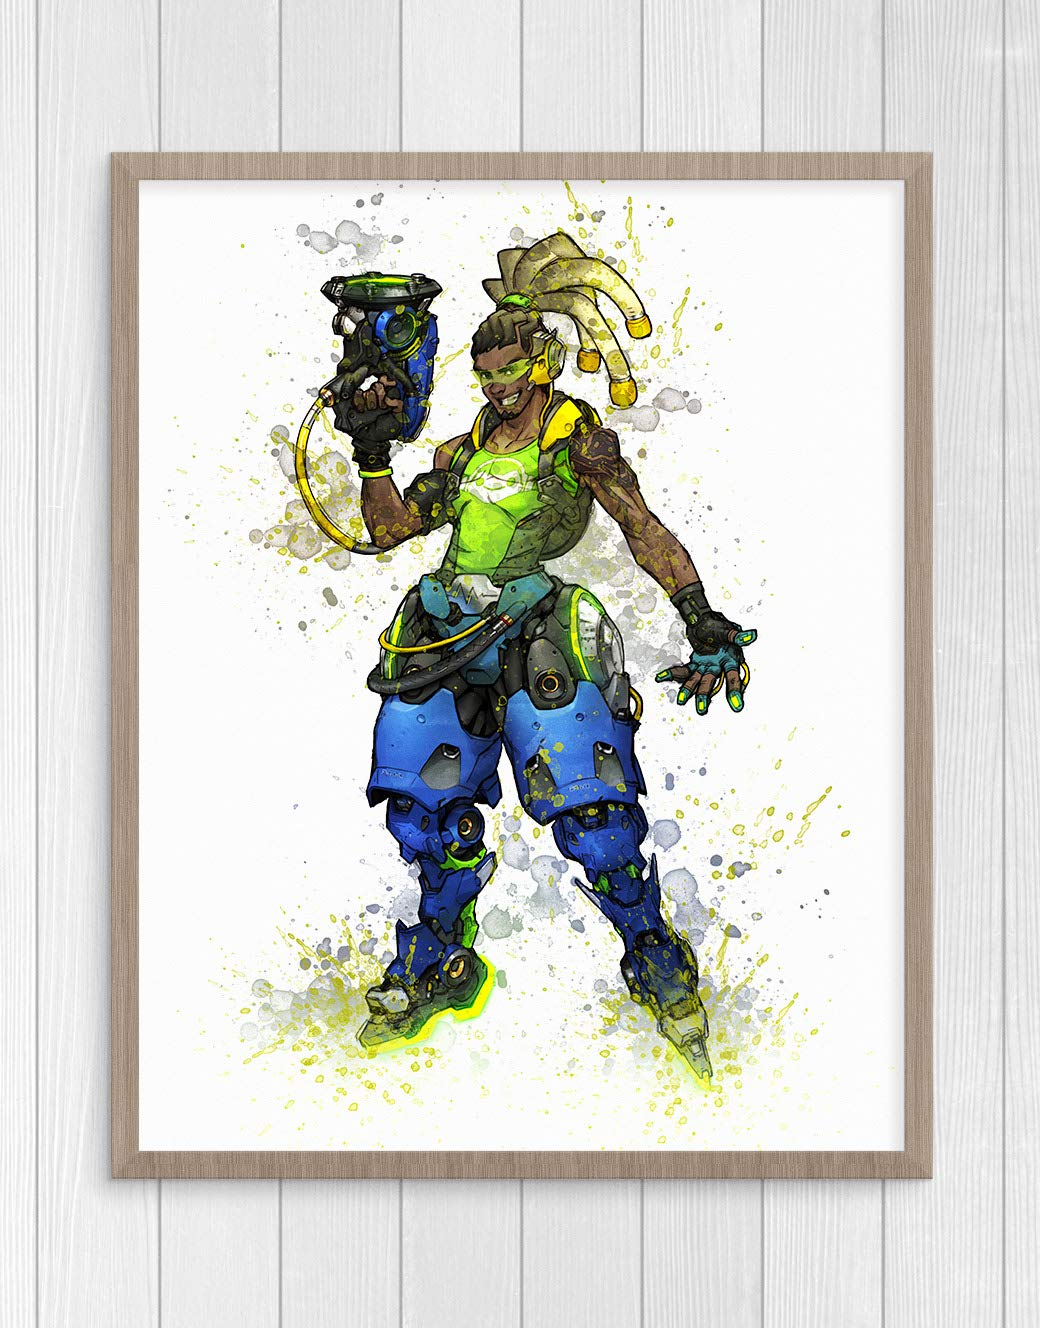 Overwatch Print, Lucio Print, Overwatch Poster, Lucio Poster, Game Poster, Blizzard N.007 (16 x 20 inch)